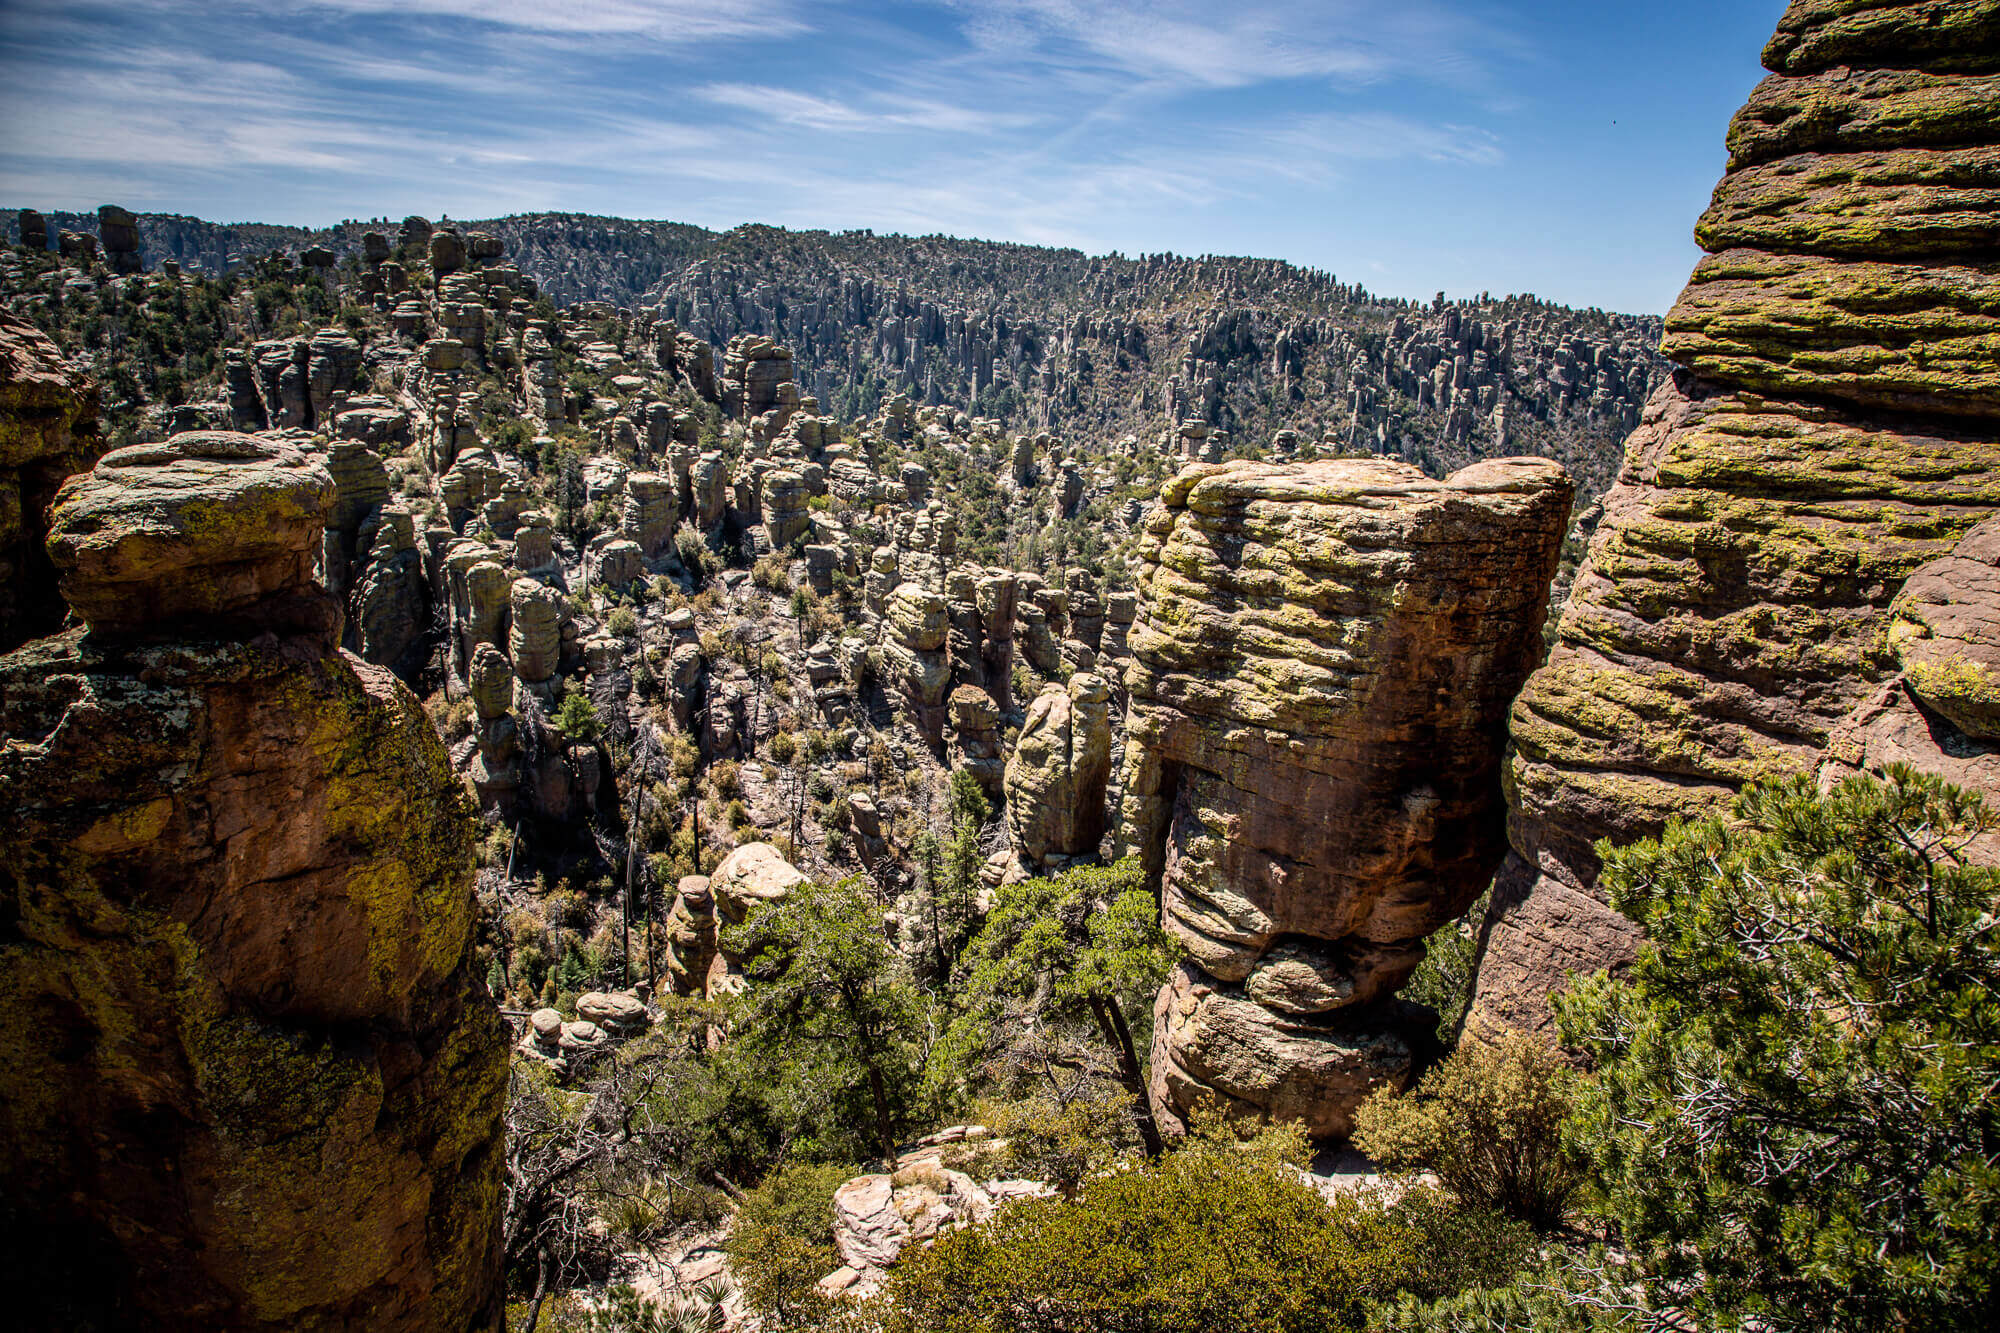 Chiricahua National Monument canyon view